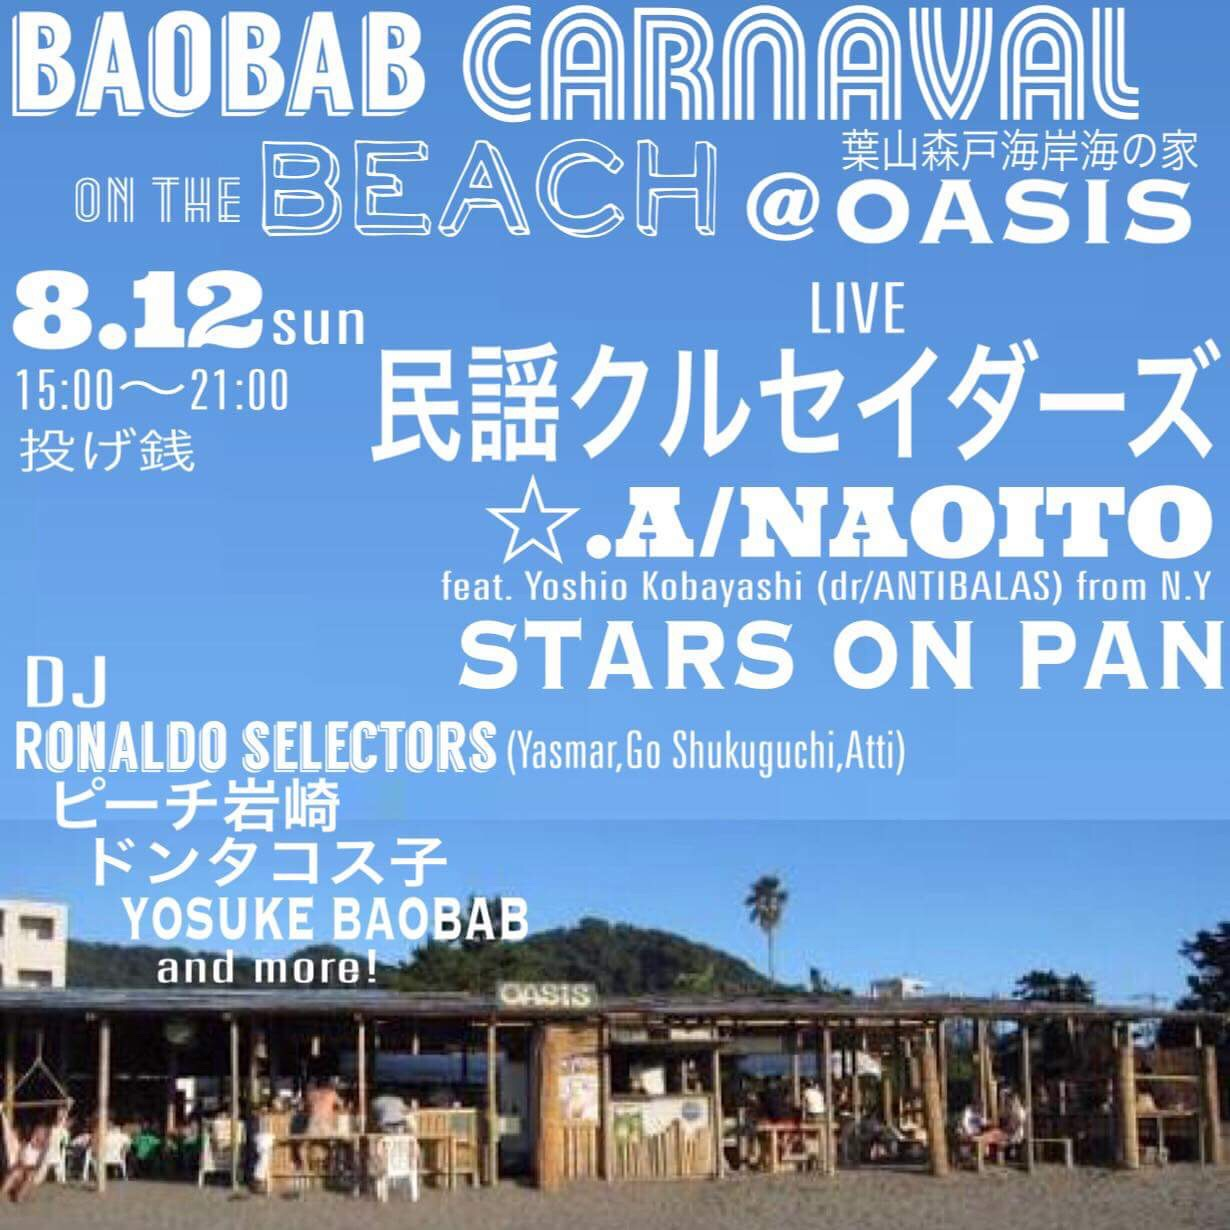 BAOBAB CARNAVAL on the BEACH